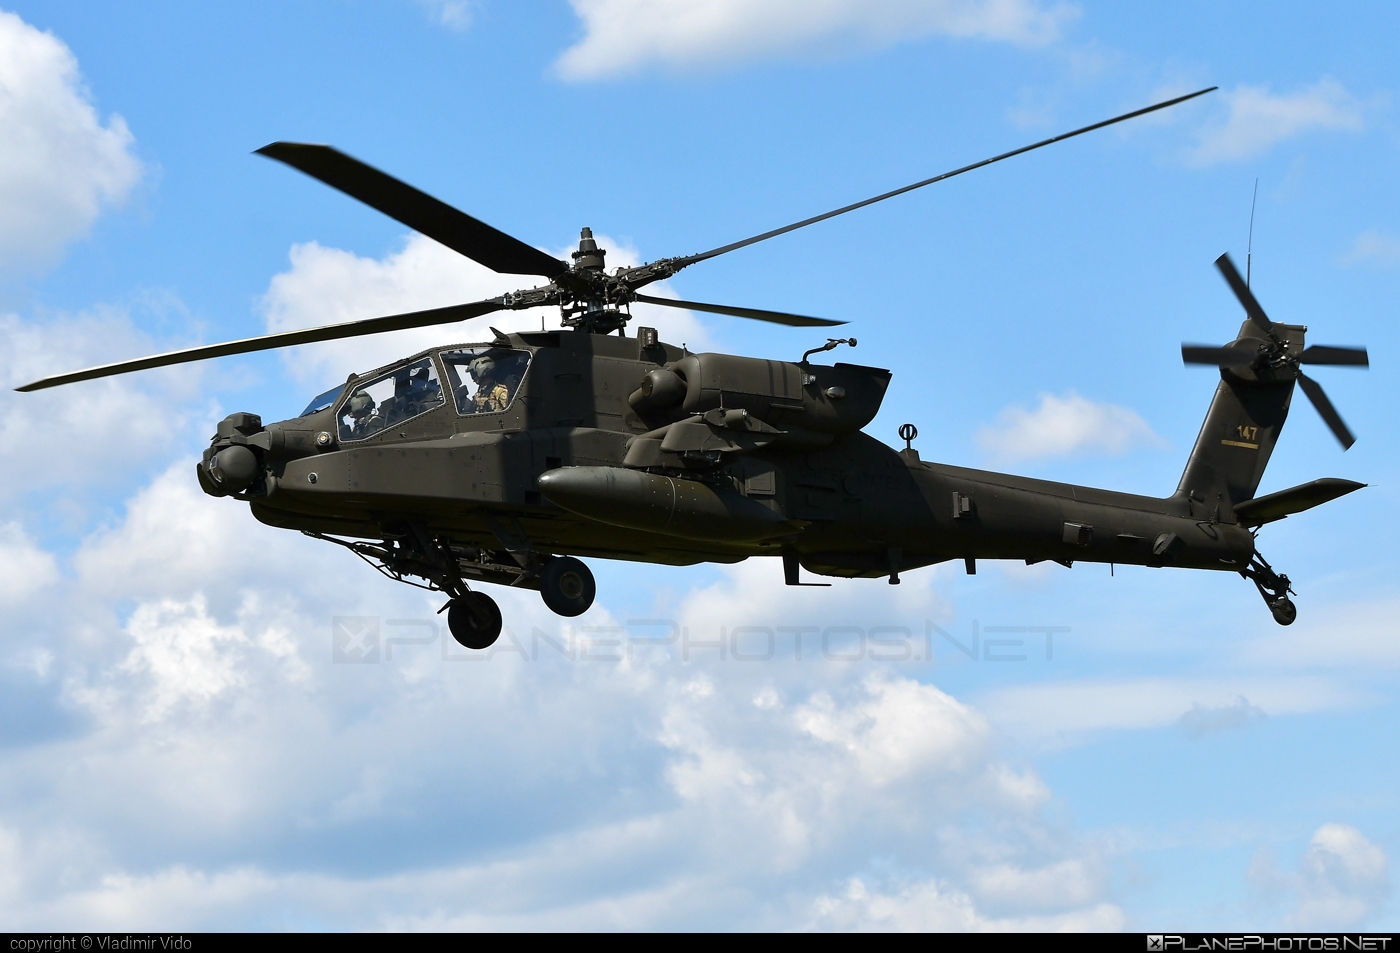 Boeing AH-64E Apache Guardian - 17-03147 operated by US Army #ah64 #ah64apache #ah64e #ah64eapache #ah64eapacheguardian #apacheguardian #boeing #siaf2019 #usarmy